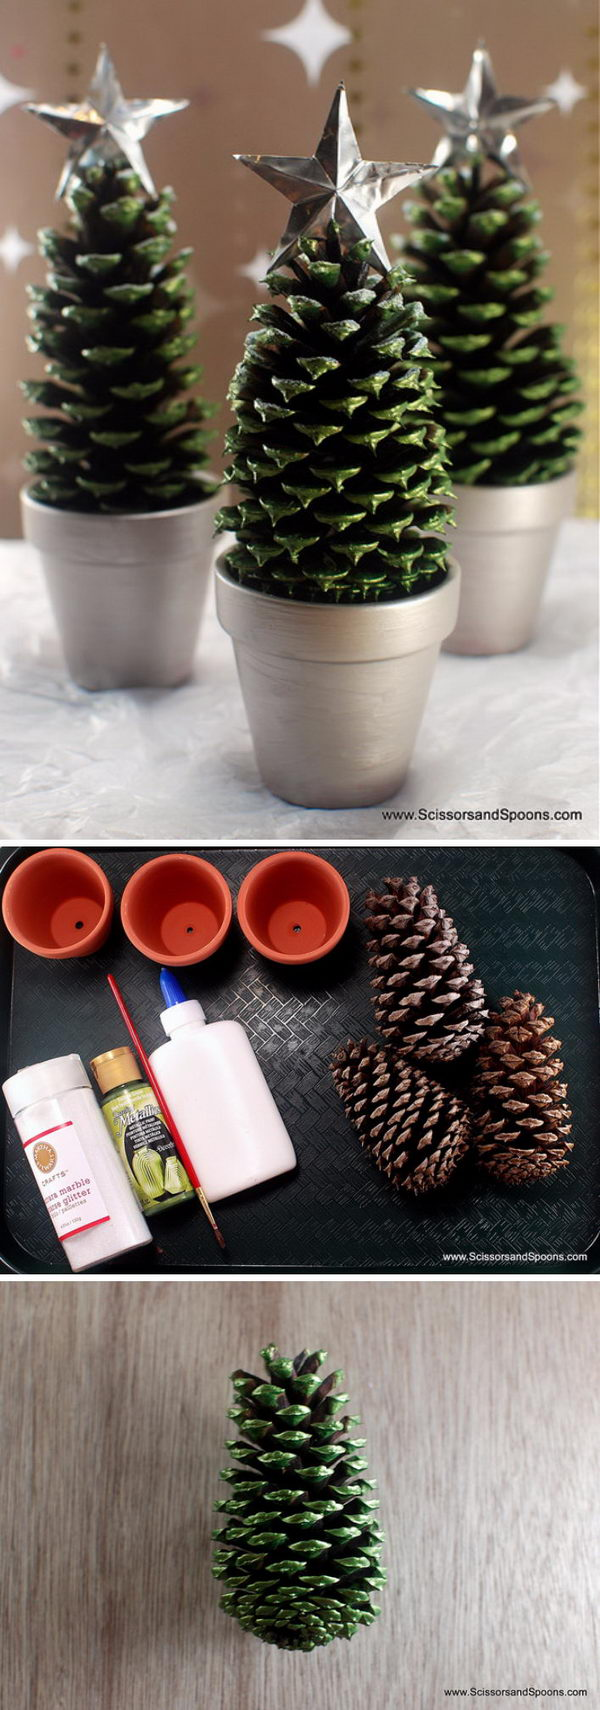 Easy & Creative Christmas DIY Projects That Kids Can Do